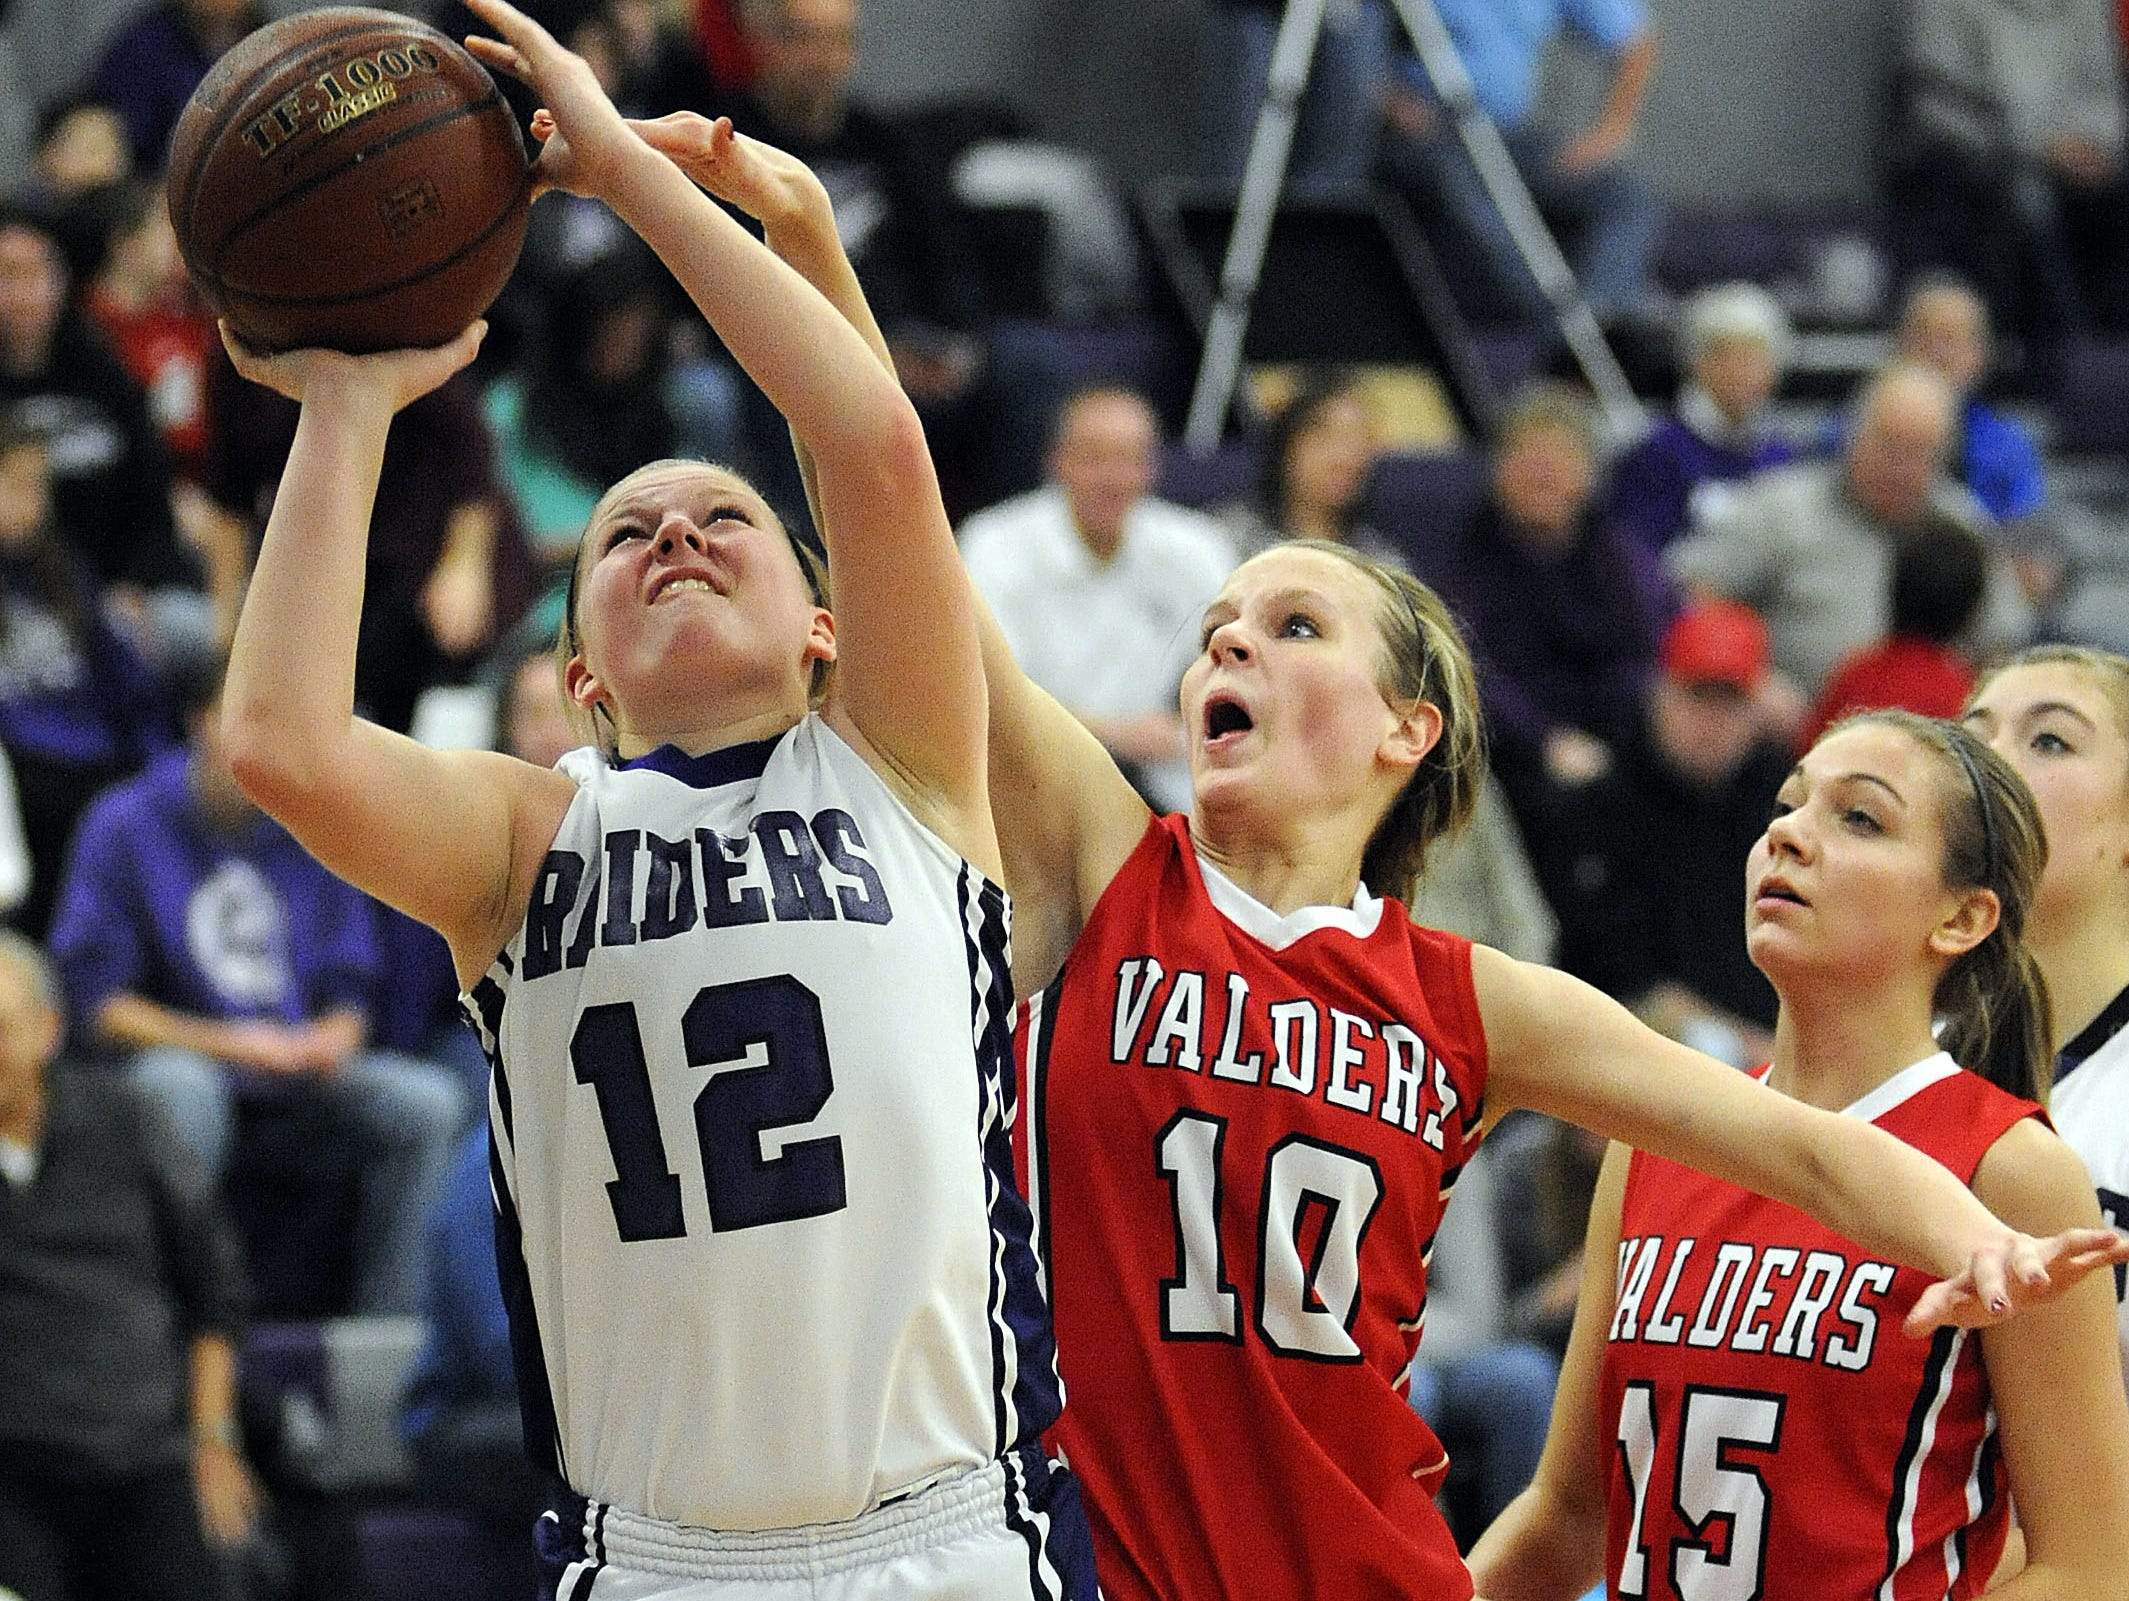 Senior Sara Winkel will be one of the top shooters in the Eastern Wisconsin Conference this season and will play a key role for the Raiders.